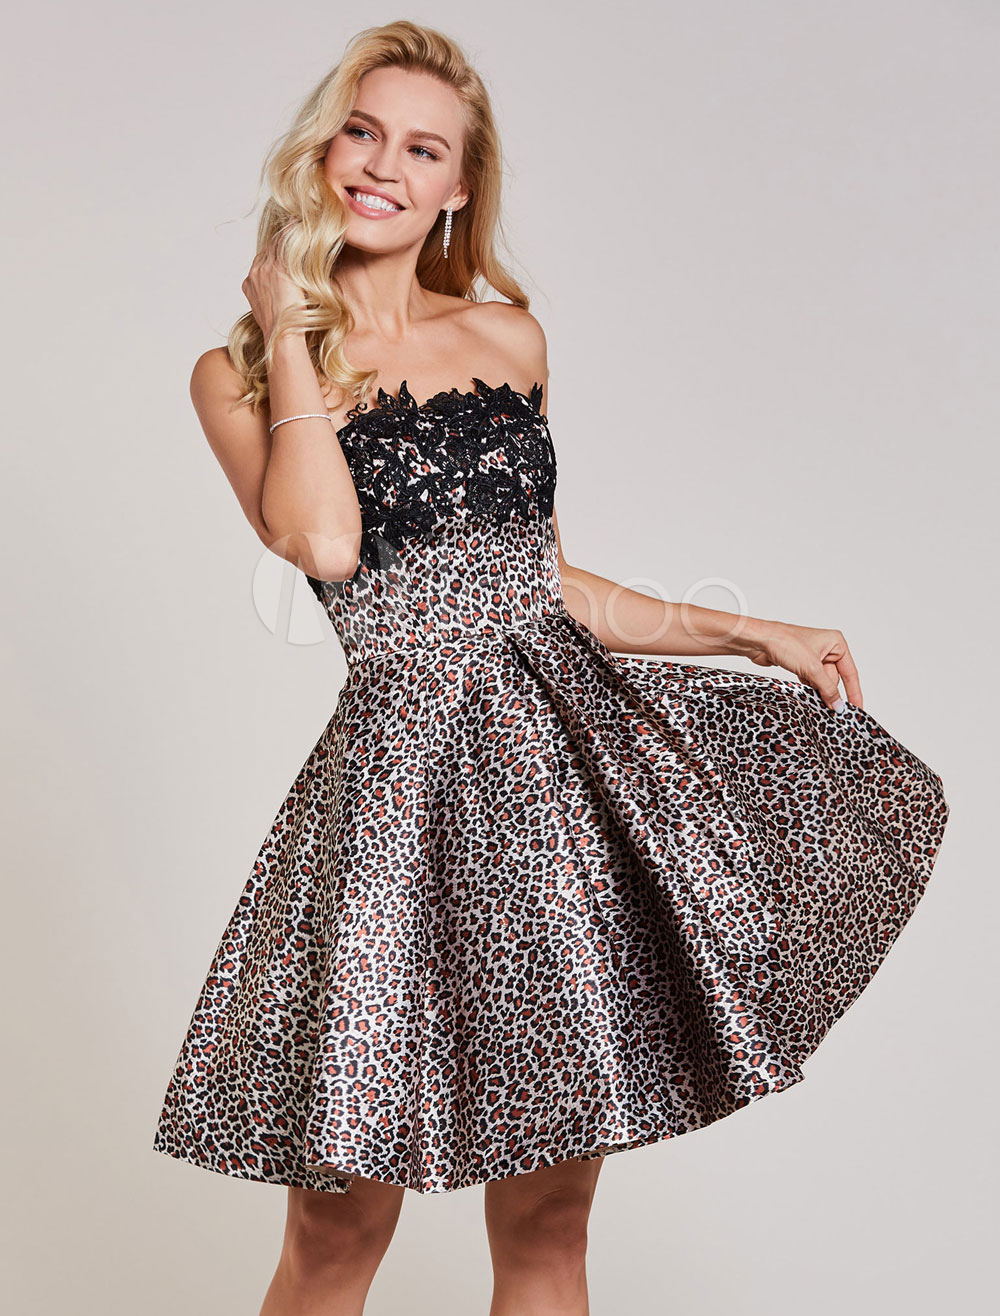 Buy Leopard Cocktail Dresses Printed Strapless Lace Applique Pleated Short Party Dresses for $71.19 in Milanoo store